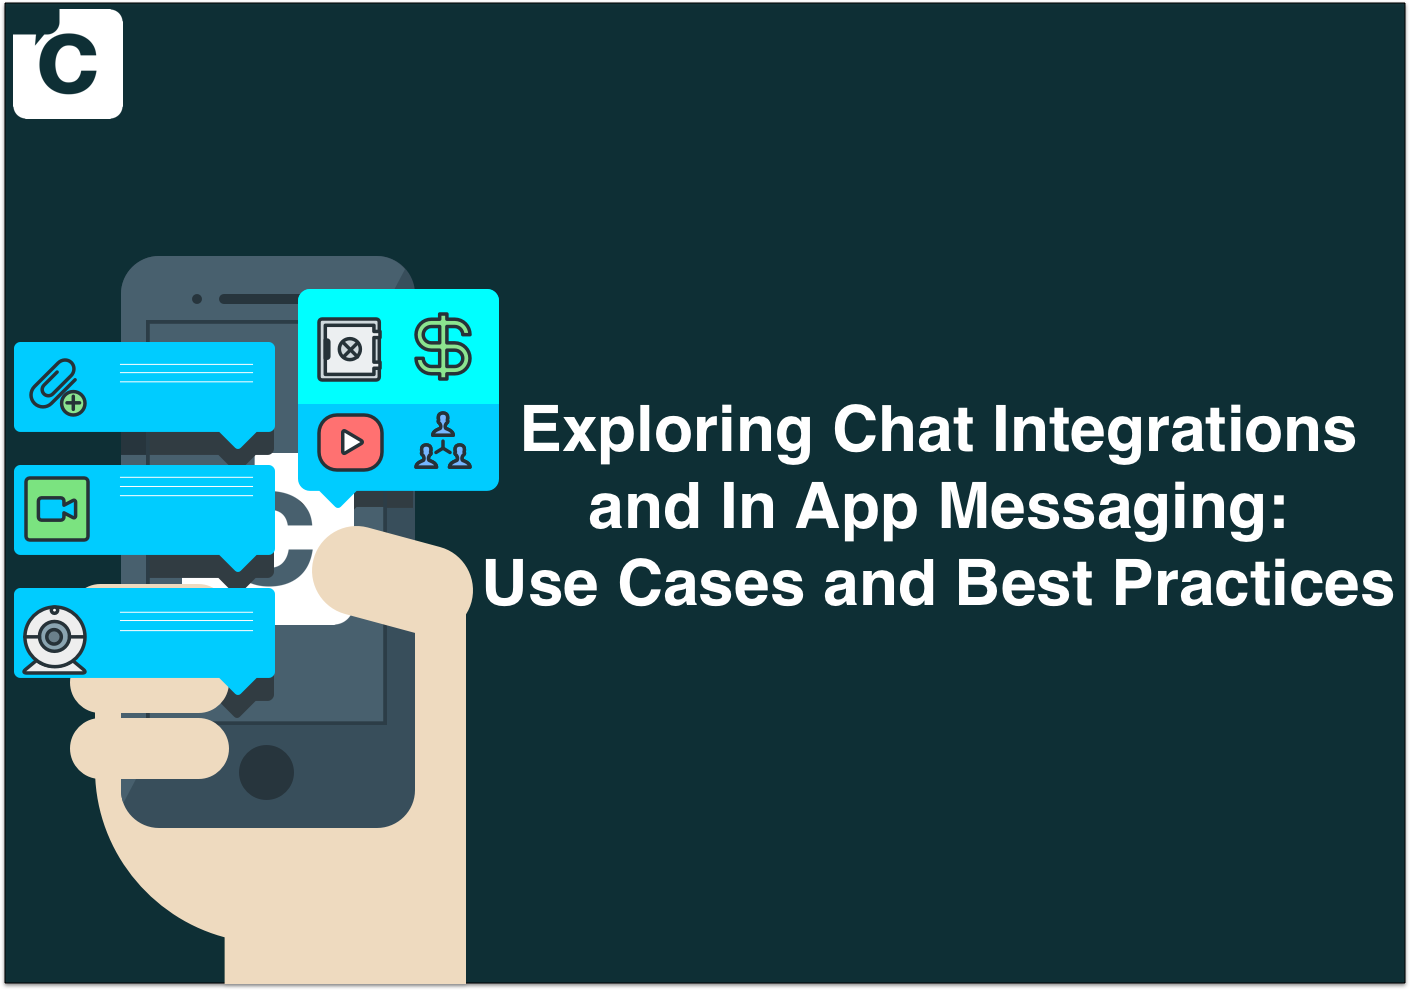 Exploring Chat Integrations and In-App Messaging: Use Cases and Best Practices